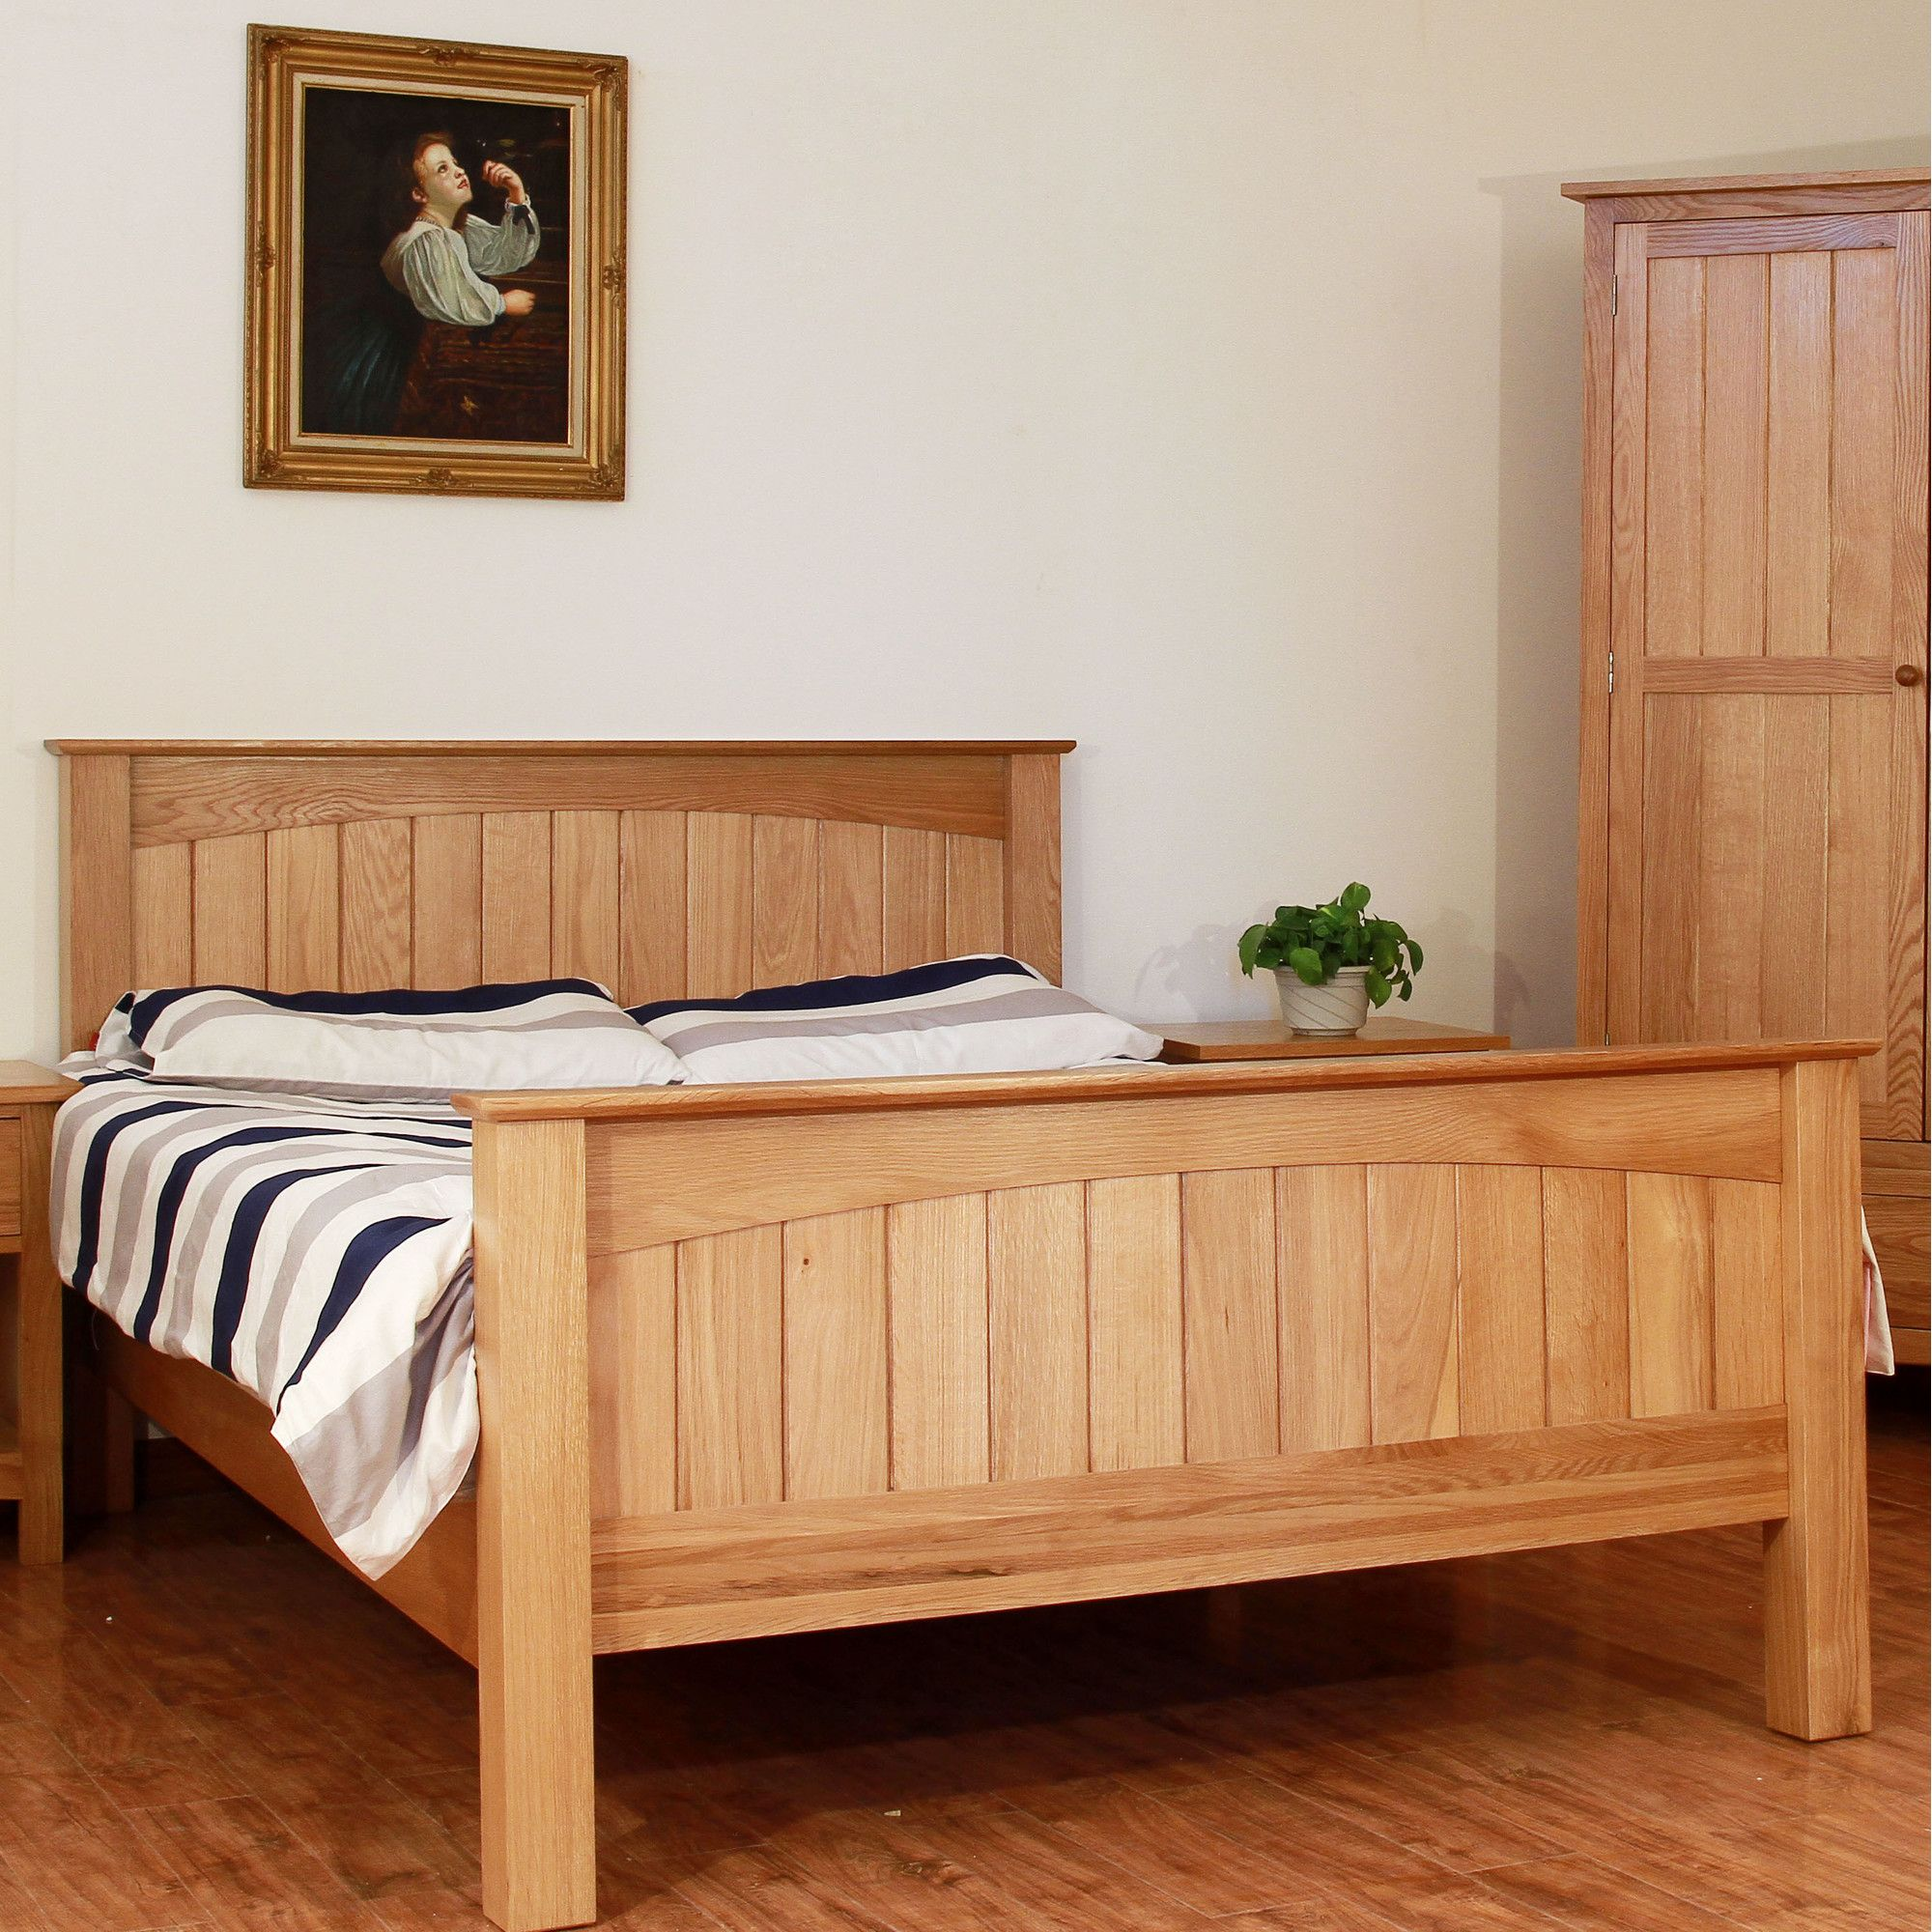 Elements Farmhouse Bed Frame - Double at Tesco Direct